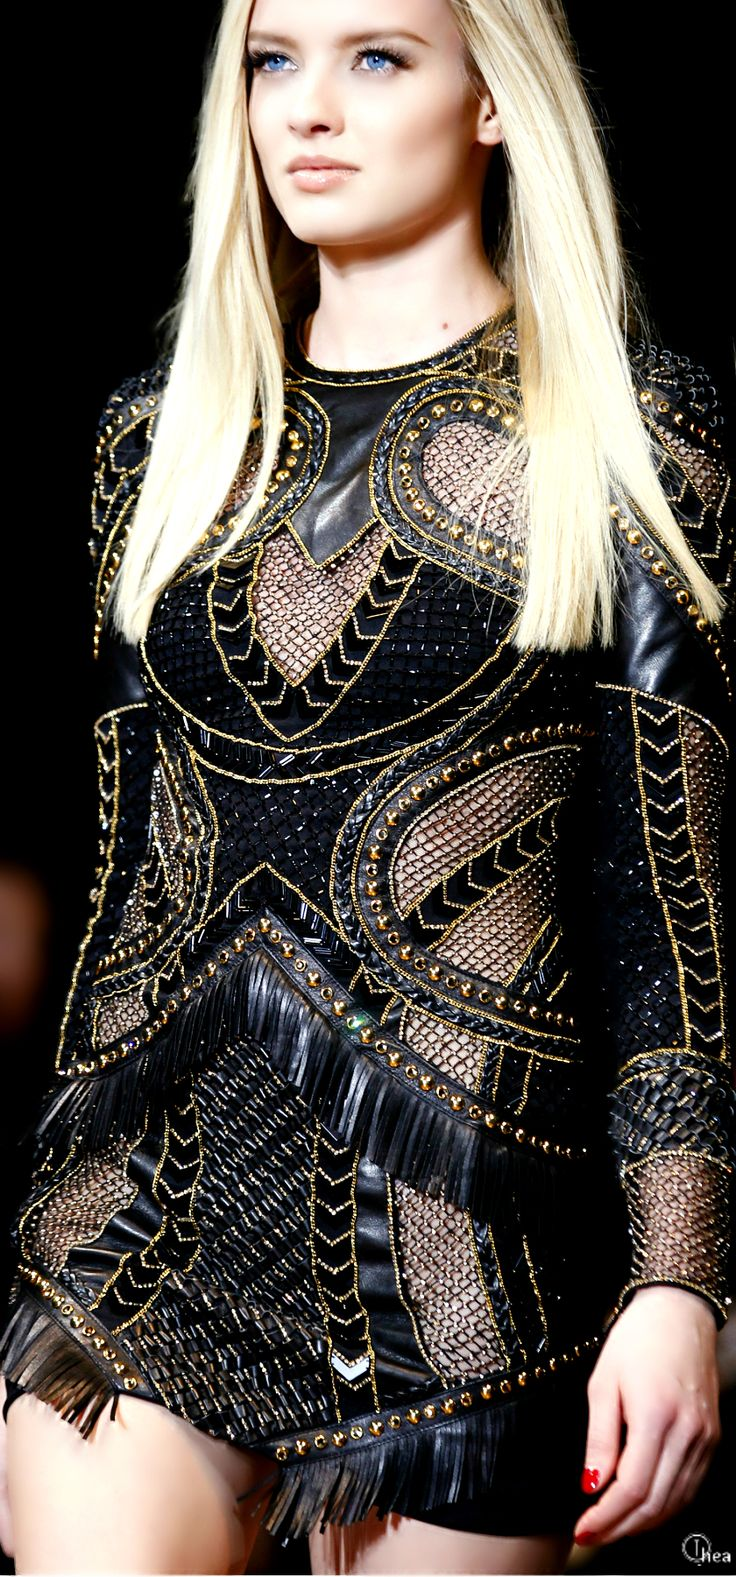 Versace Fall 2014. I really do like this rock-chick, biker styled edgy creation. I love the use of leather along with plain black materials, the mesh cut-outs are a must have, the golden styled thread throughout is exactly on point, and the small patches of tassels are super fun and cute. I really like this one.